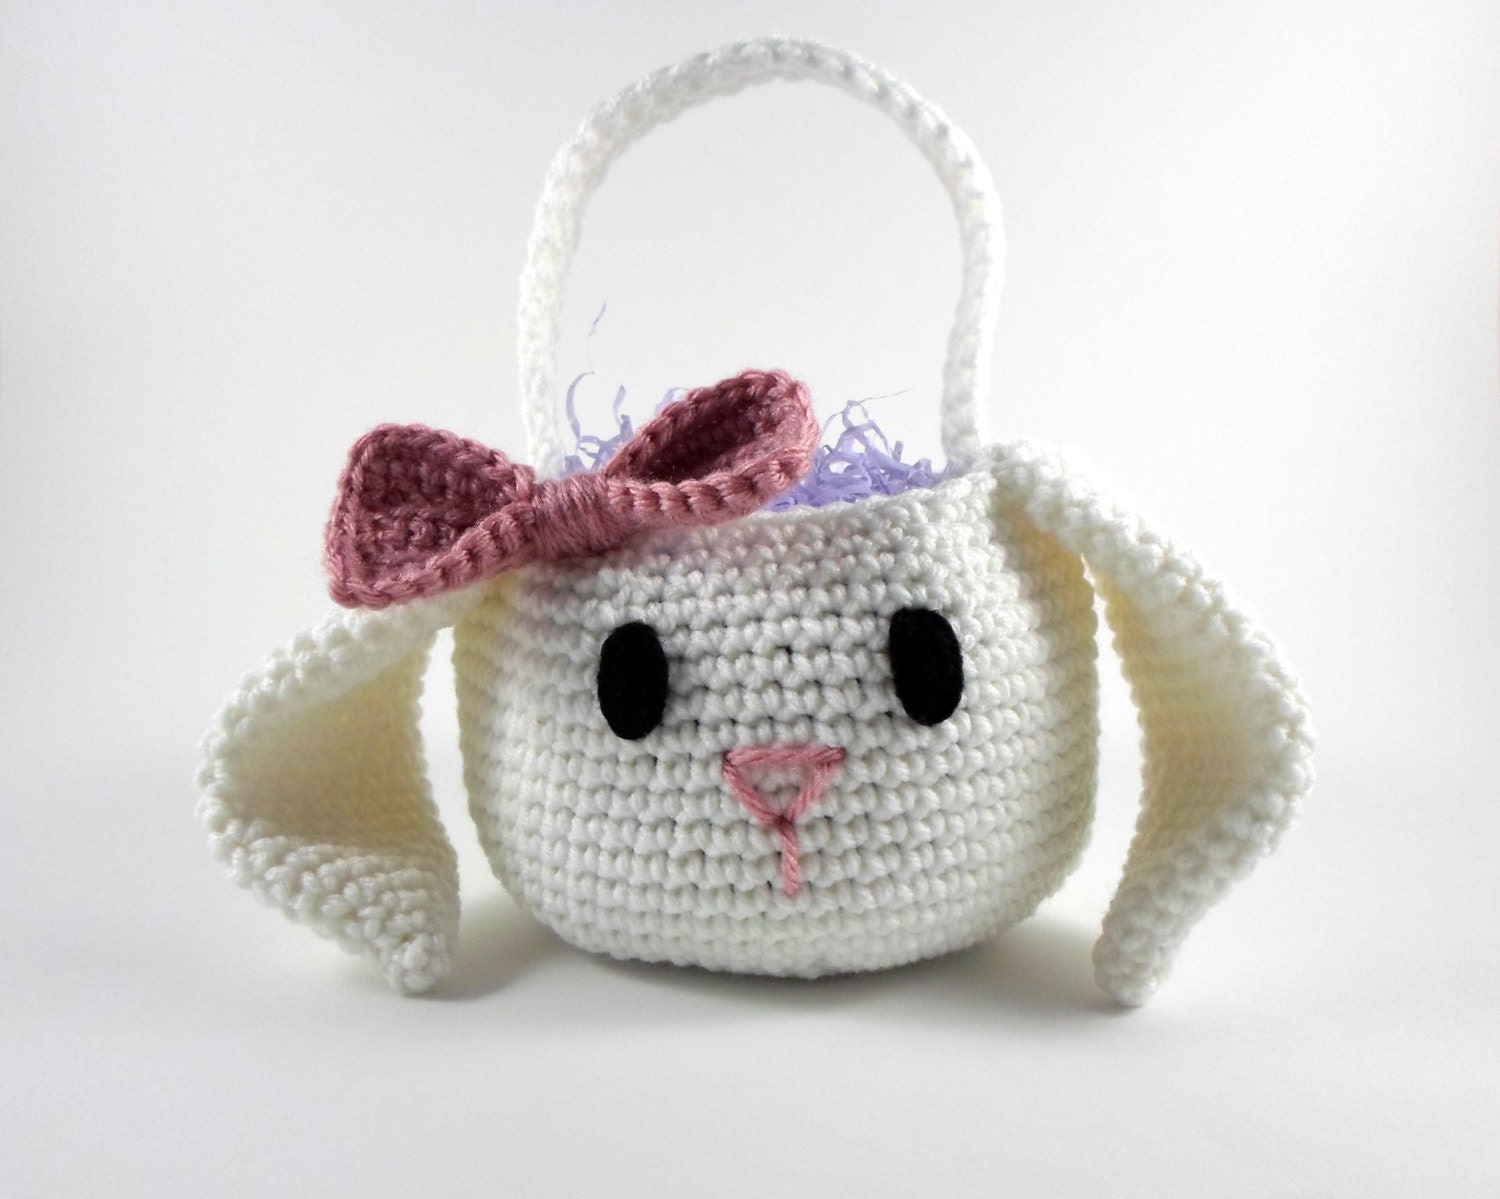 Free Crochet Patterns For Easter Bunny Baskets : Easter Bunny Basket Crochet Easter Basket Bunny by ...